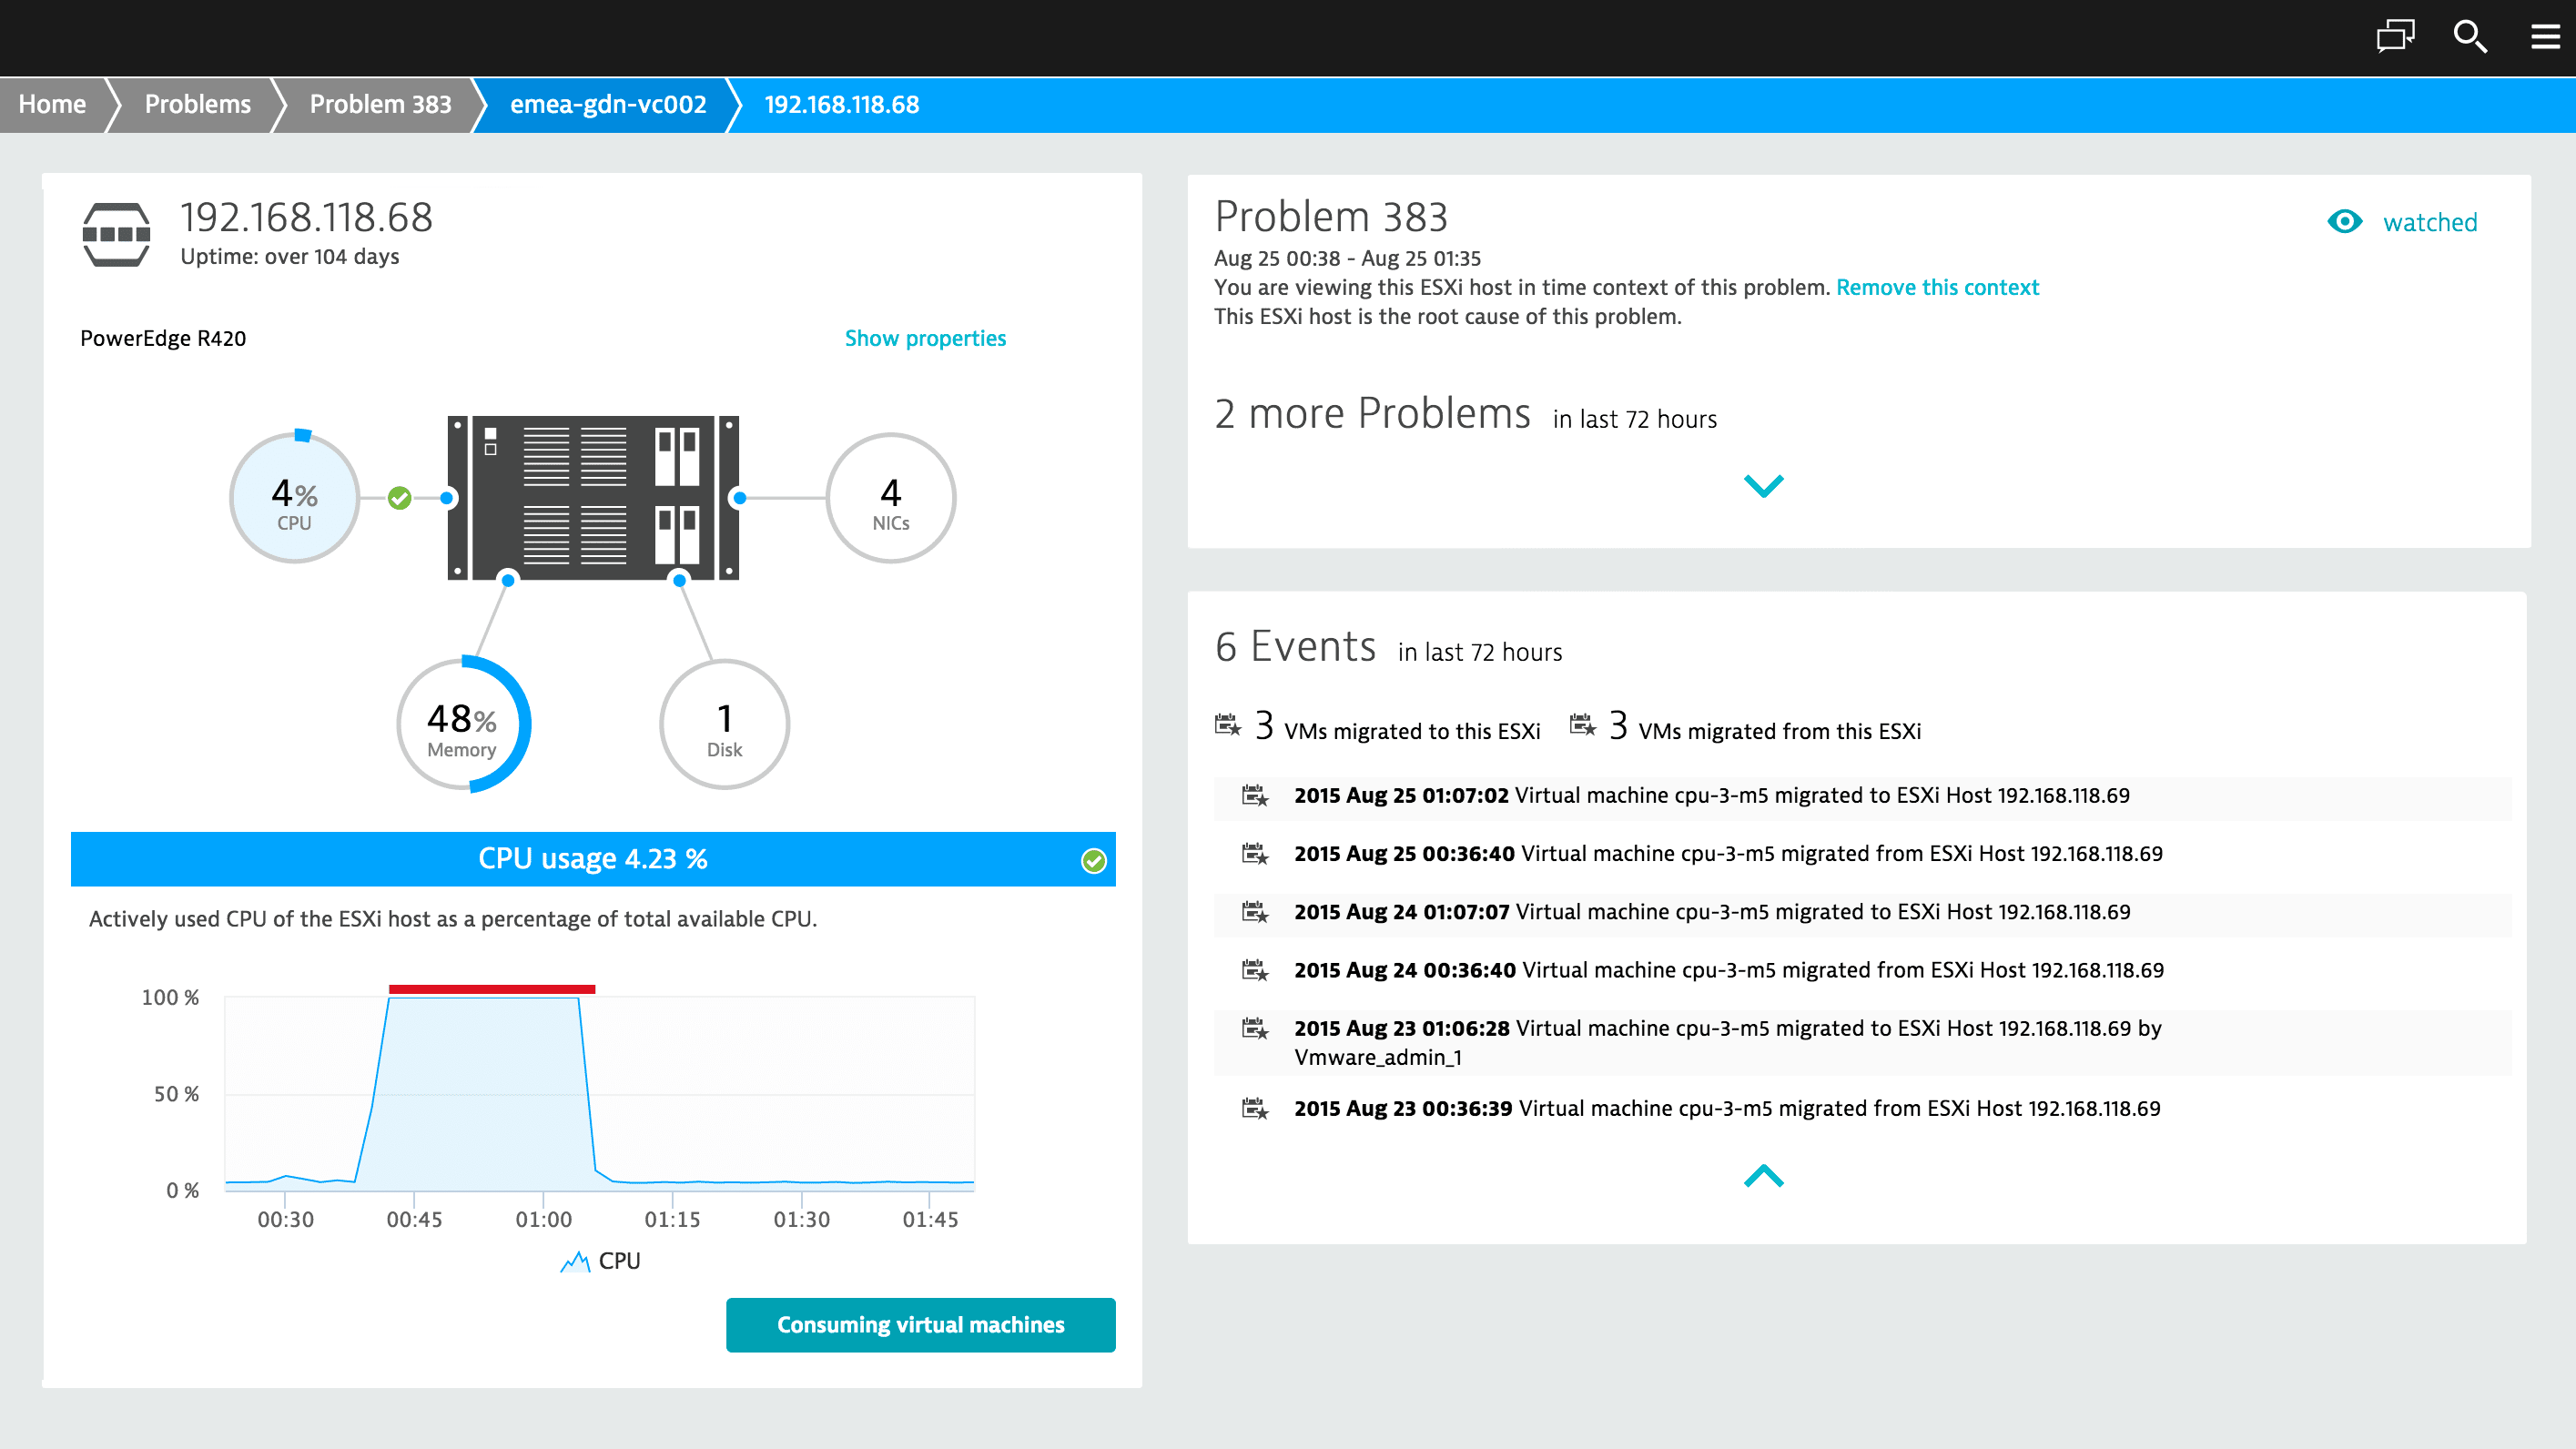 Dynatrace self-learning auto-adapts baselines dynamically as infrastructure changes.